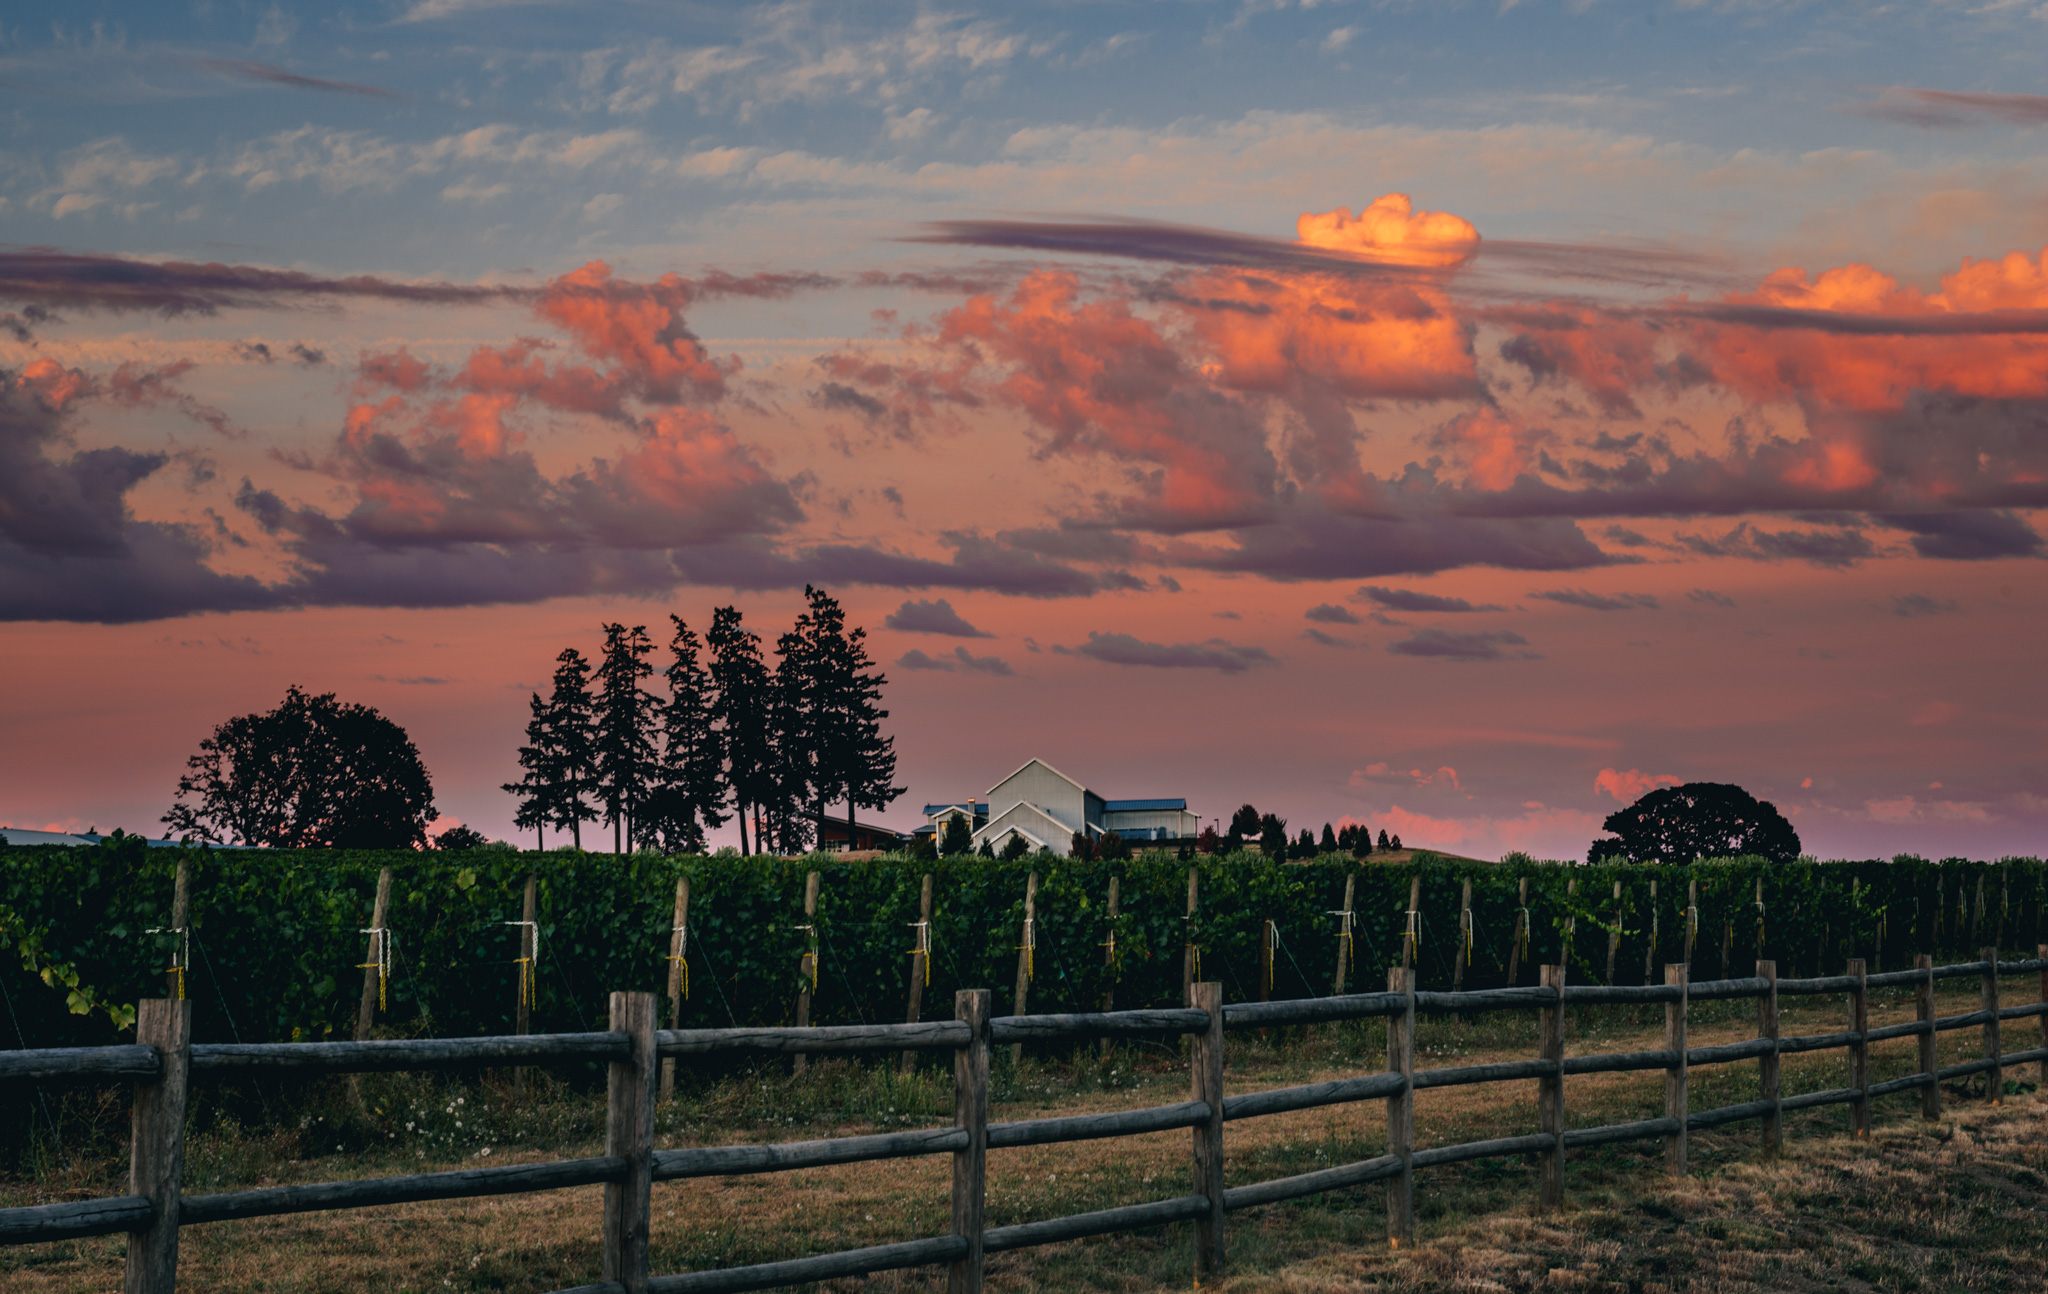 US : Oregon : Early evening in the Dundee Hills AVA